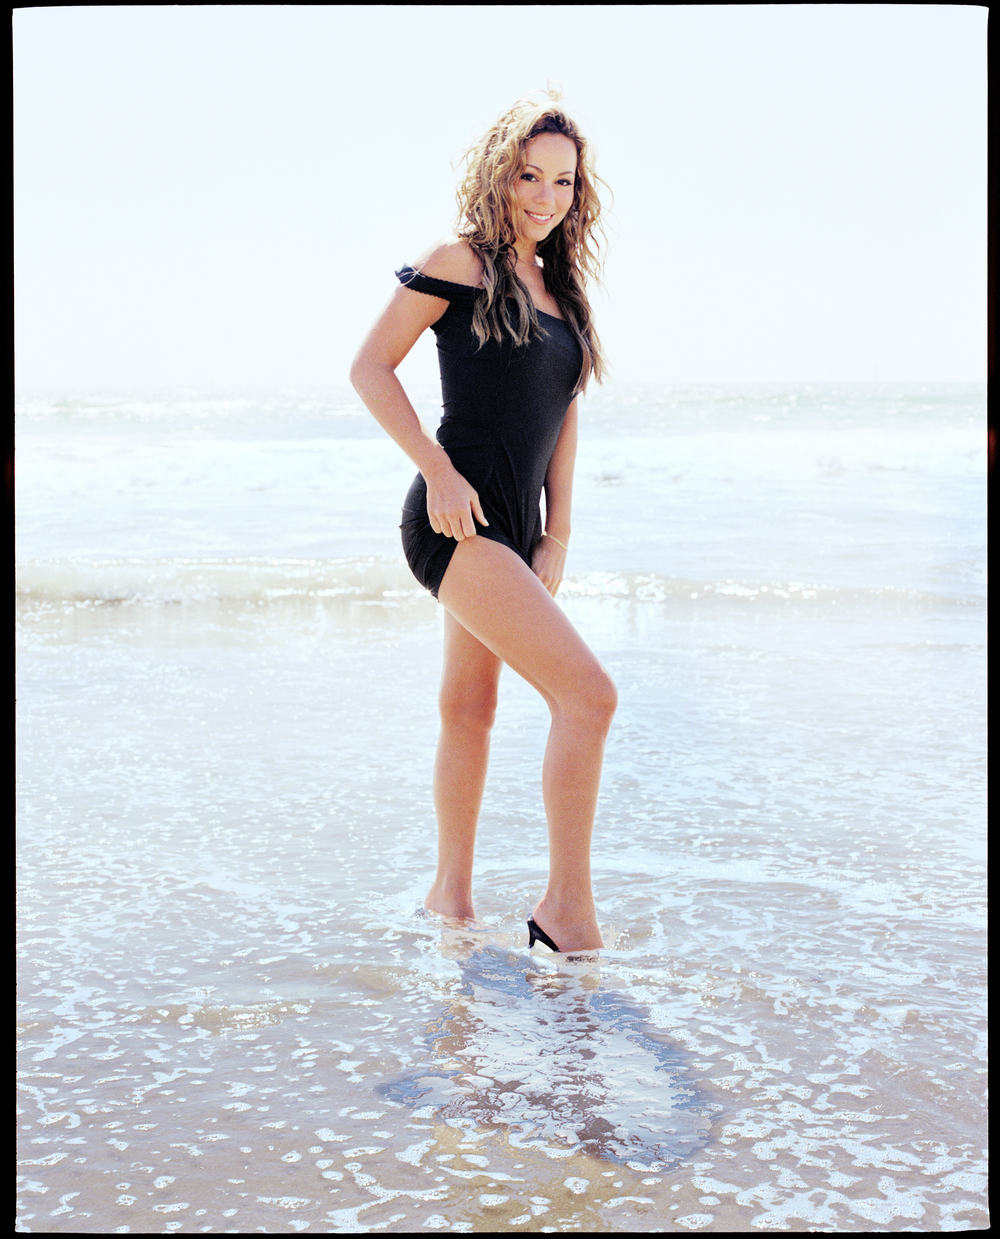 Mariah Carey in Malibu by Patrik Andersson